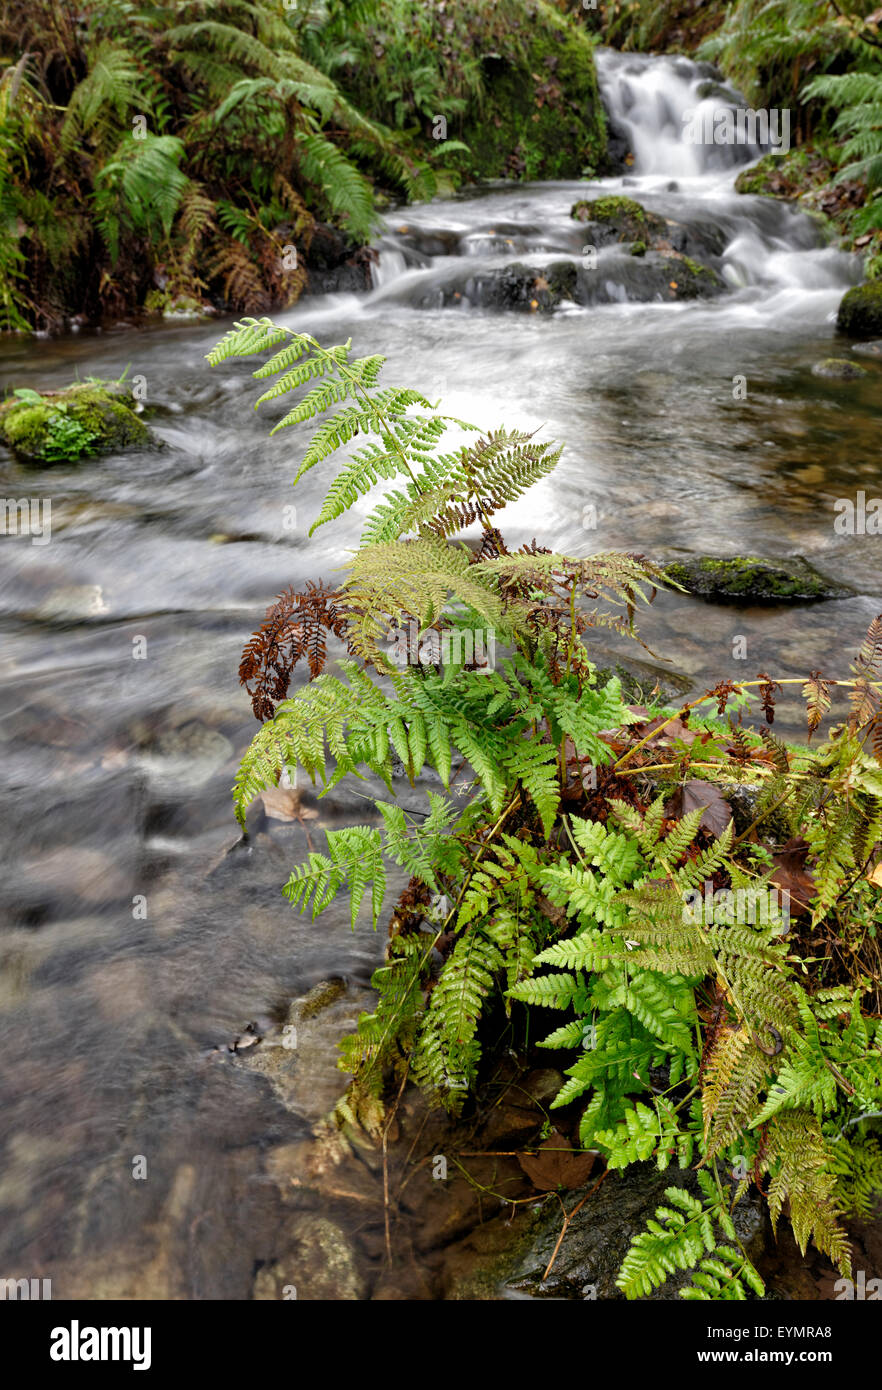 River flowing into Derwentwater in the Lake District National Park, Cumbria, England Stock Photo